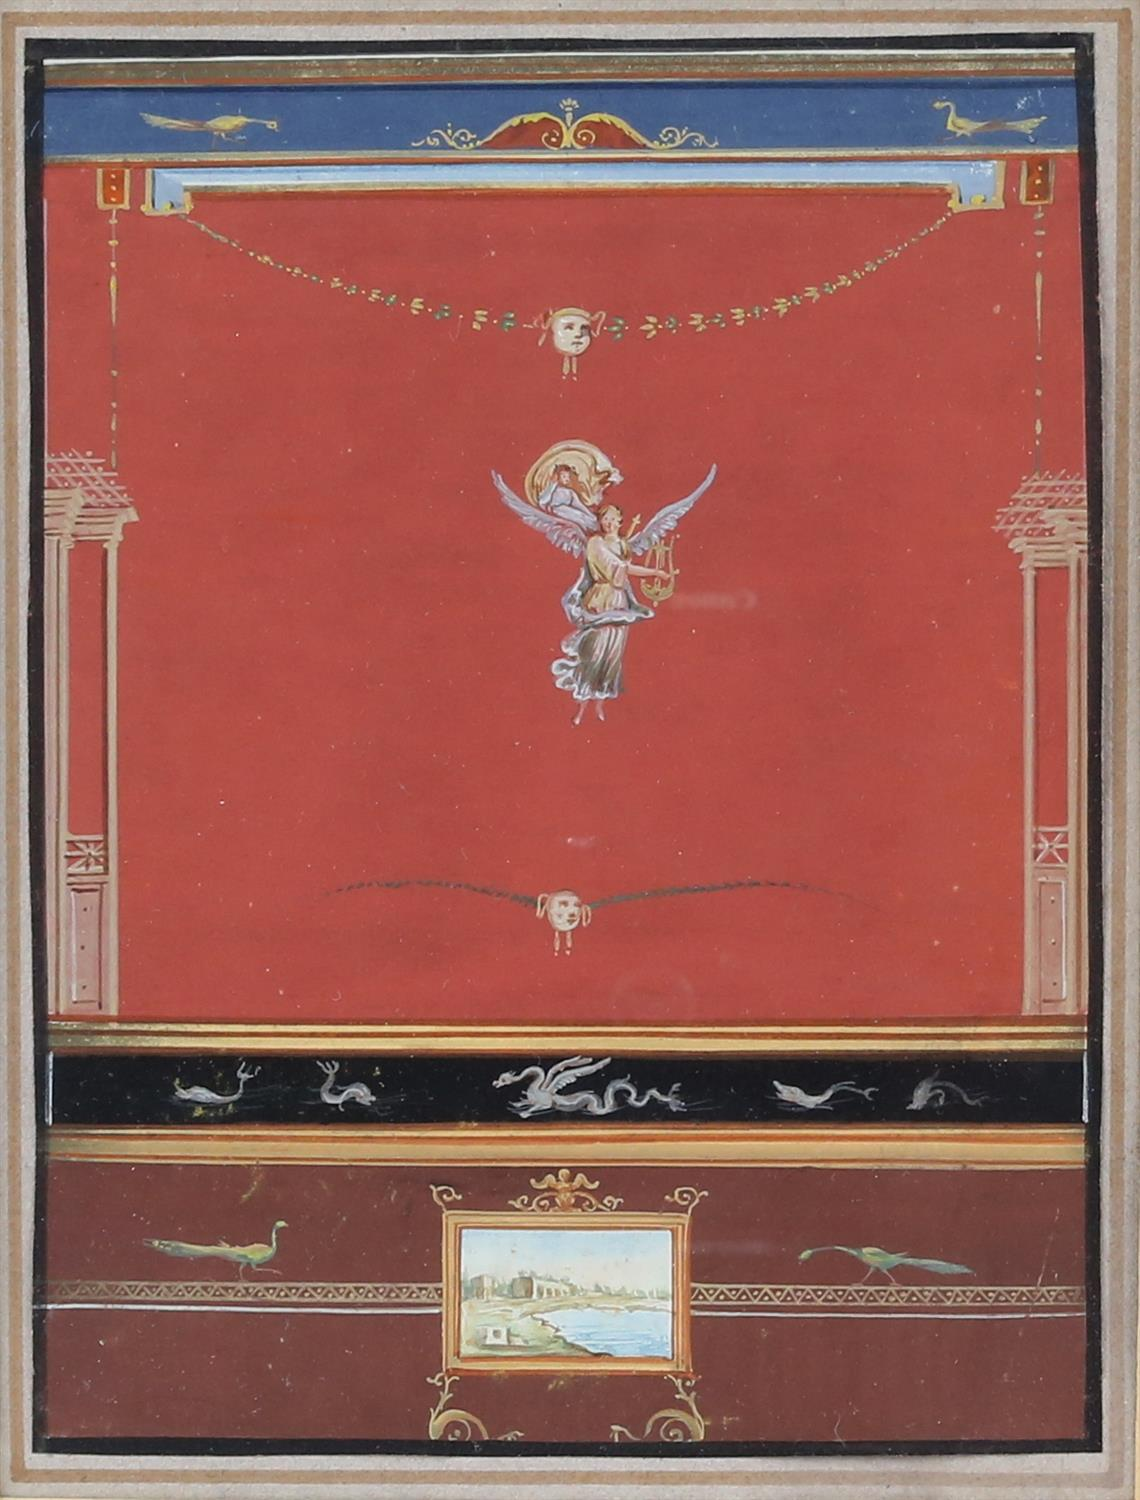 19th century Italian School, Pompeiian wall decoration for an interior, 22cm x 16.5cm, and another, - Image 2 of 7